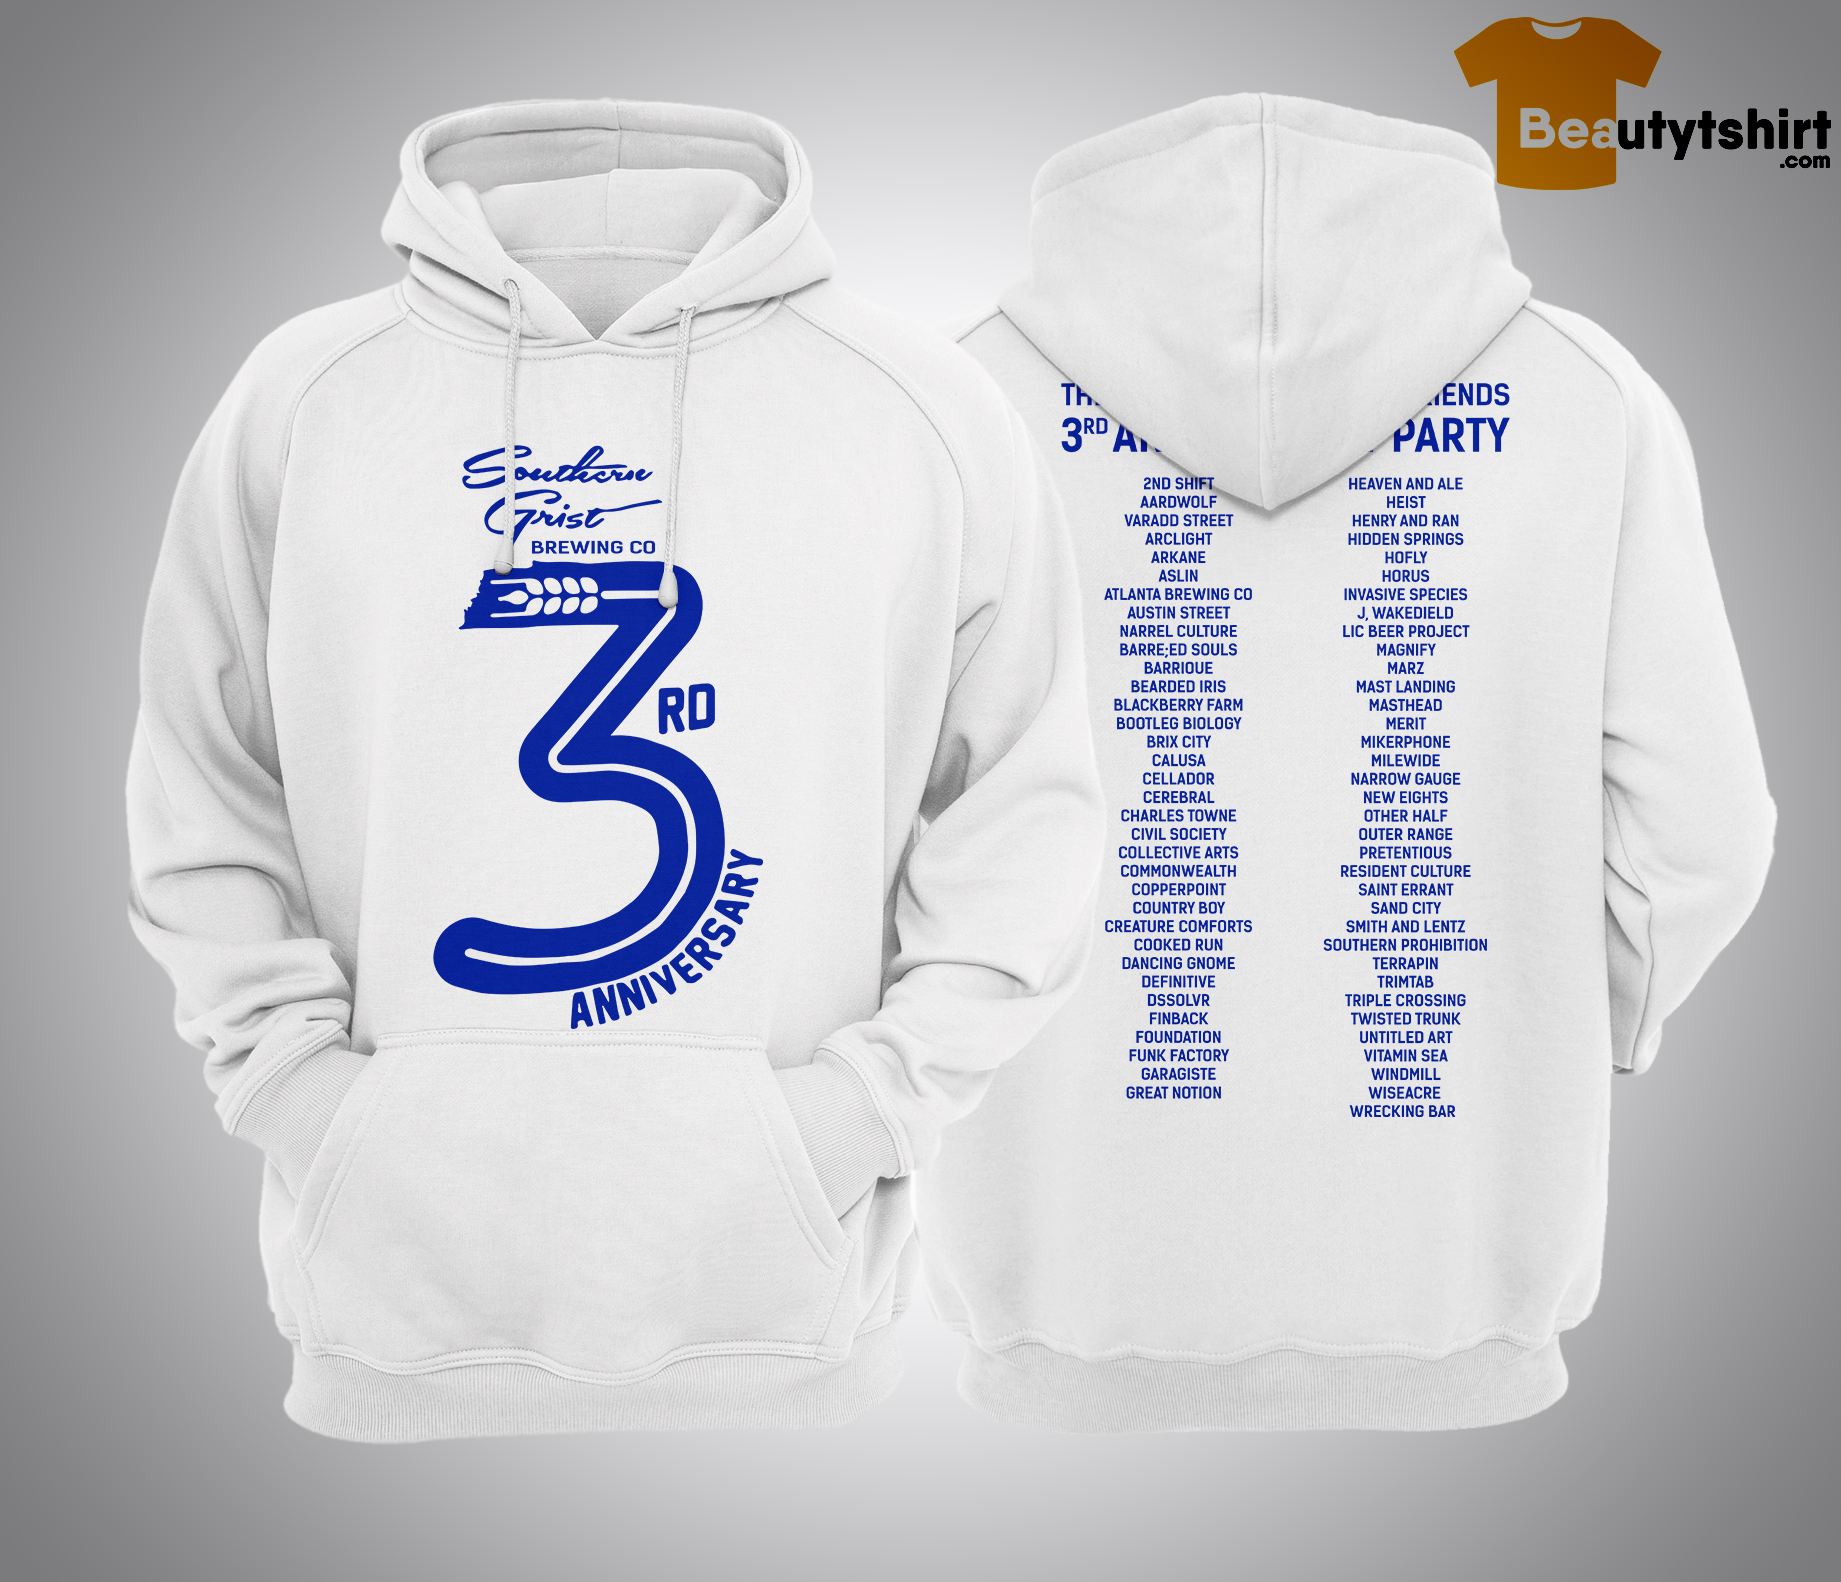 The Sounthern Grist And Friends 3rd Anniversary Party Hoodie